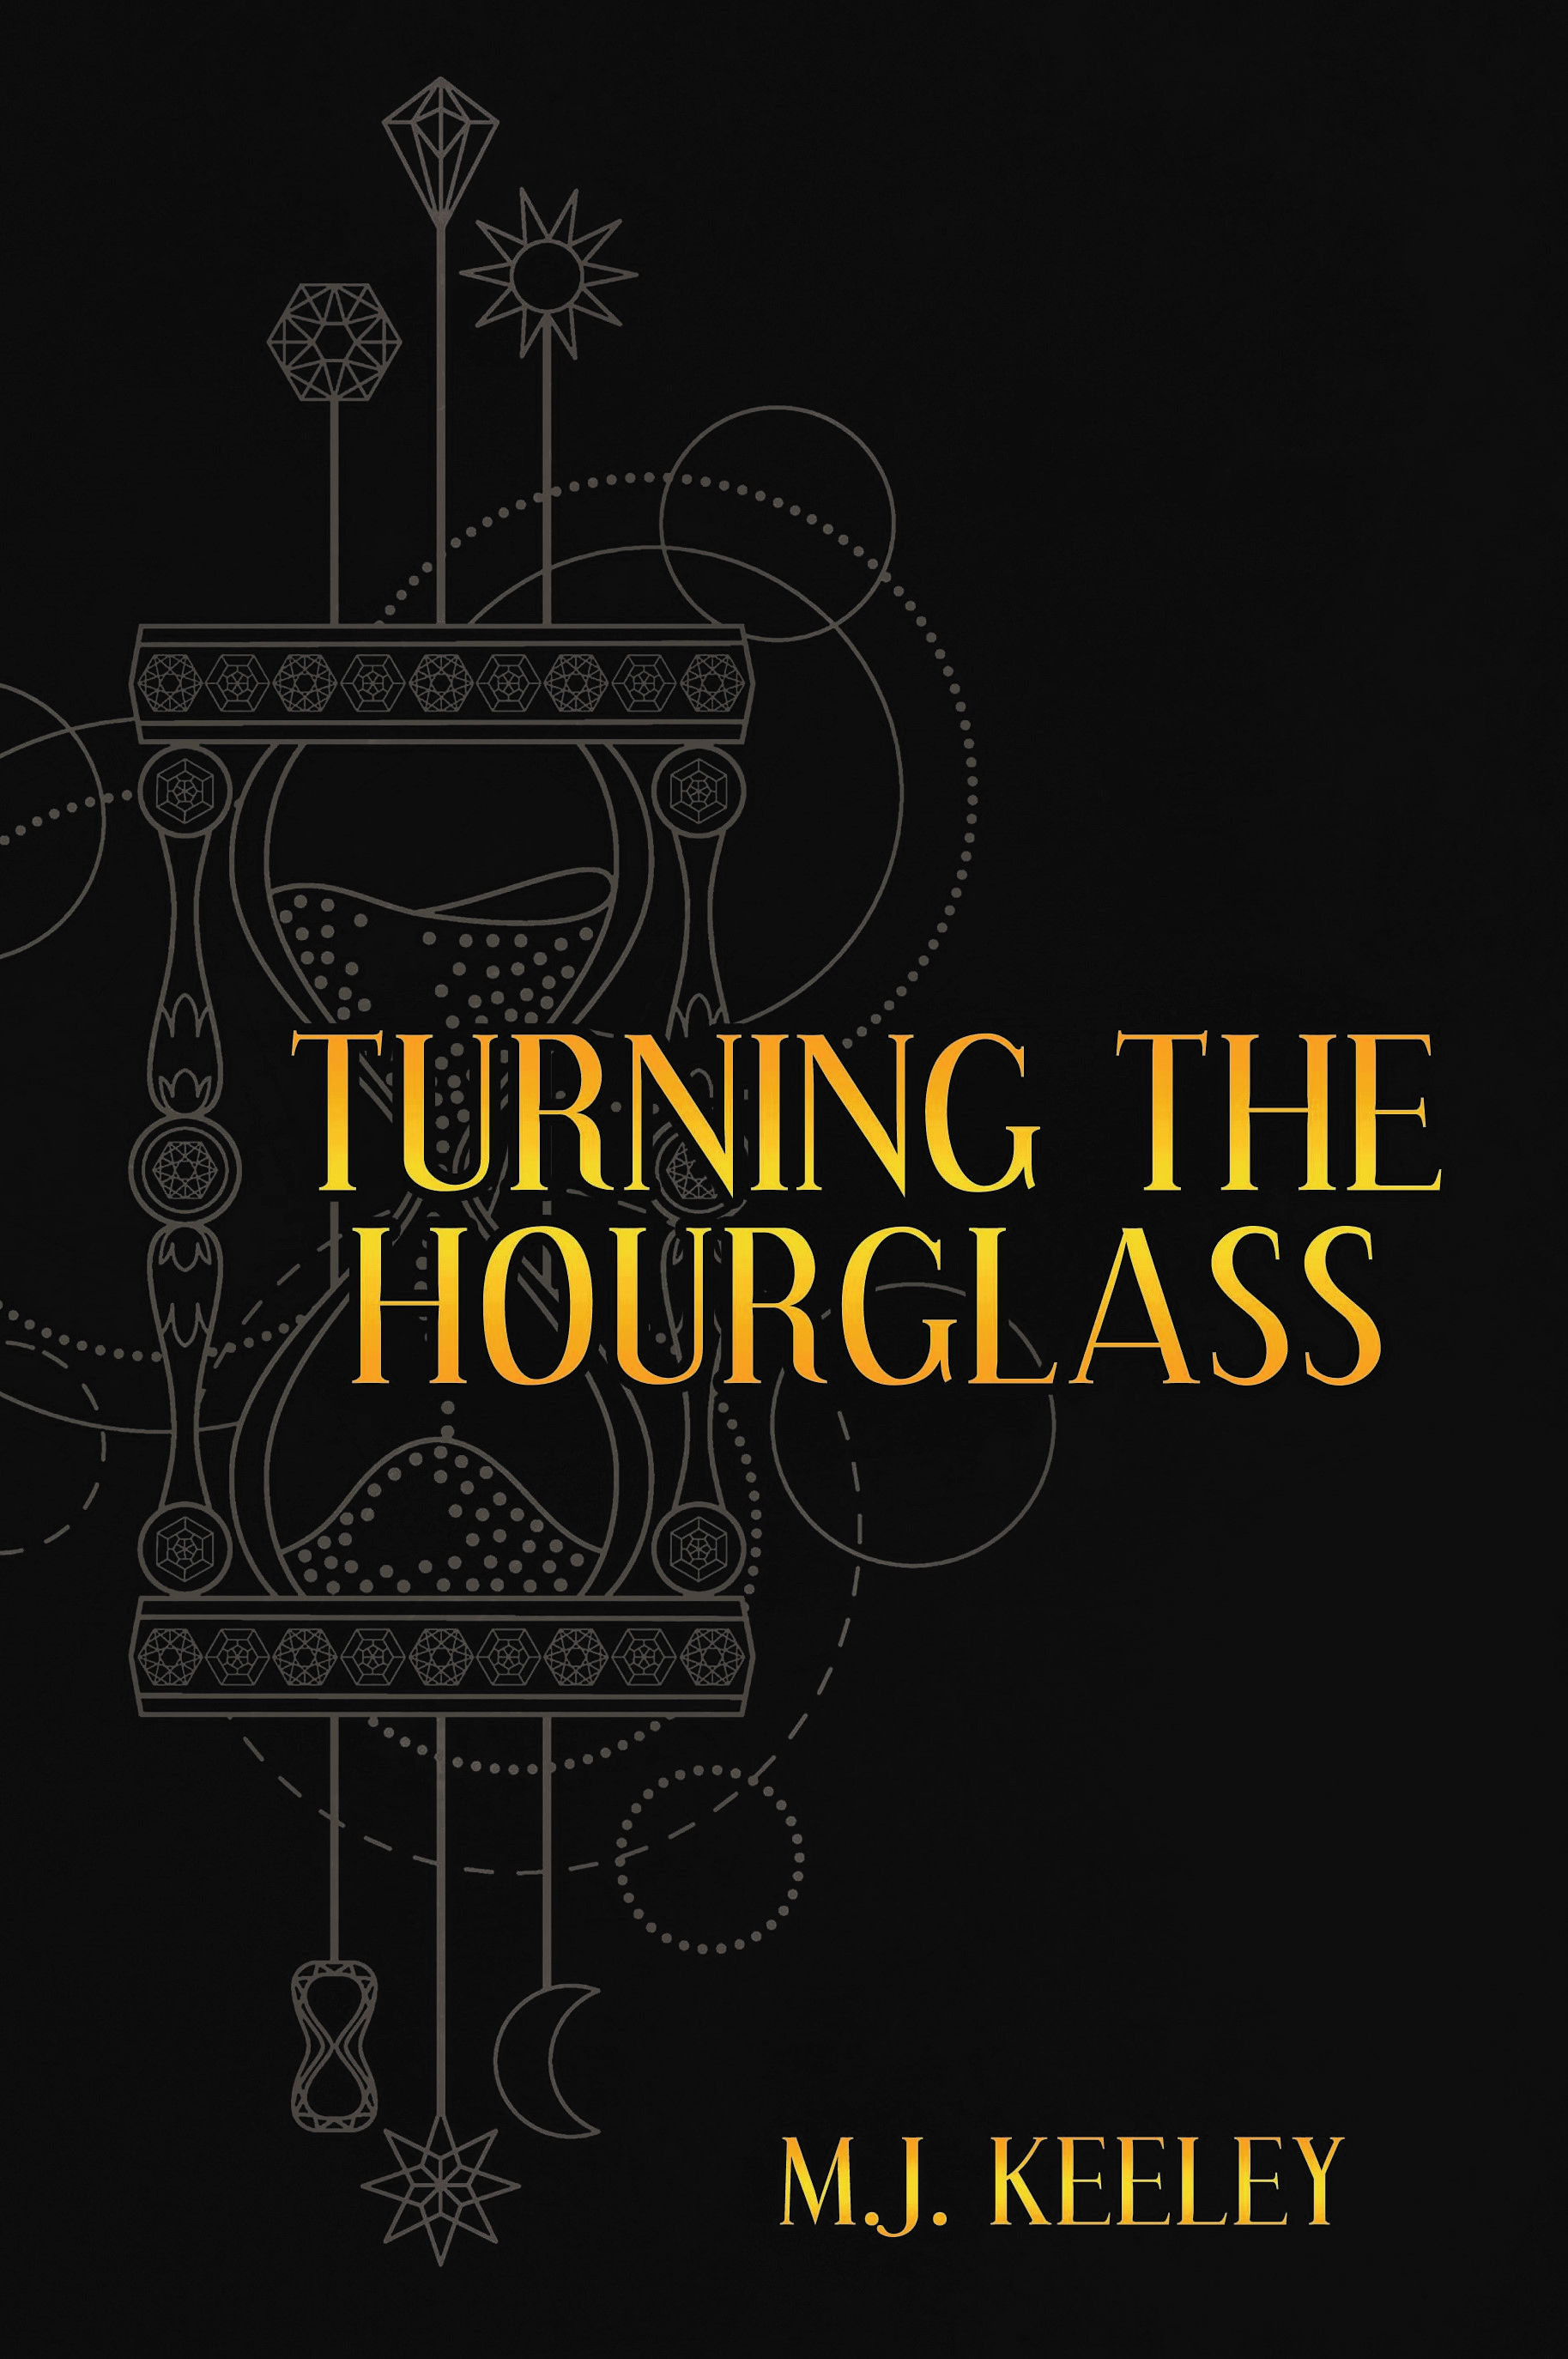 Turning the Hourglass full cover[1089].jpg